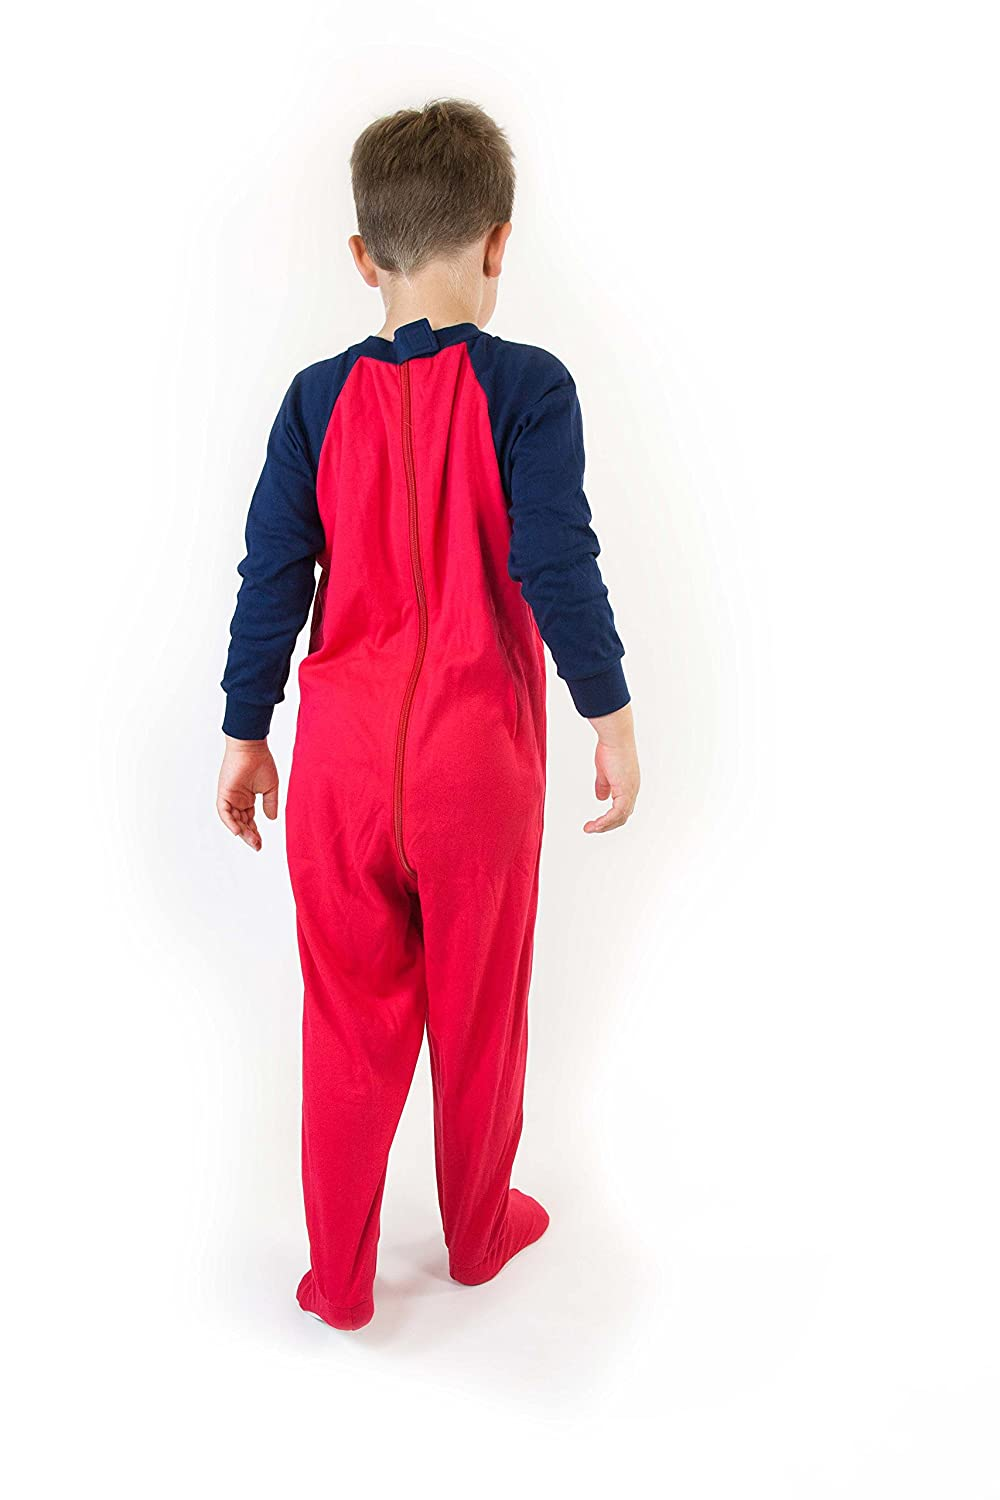 Special Needs Unisex Long Seeve Zip Back Footed Pajamas for Kids 3-16 yrs